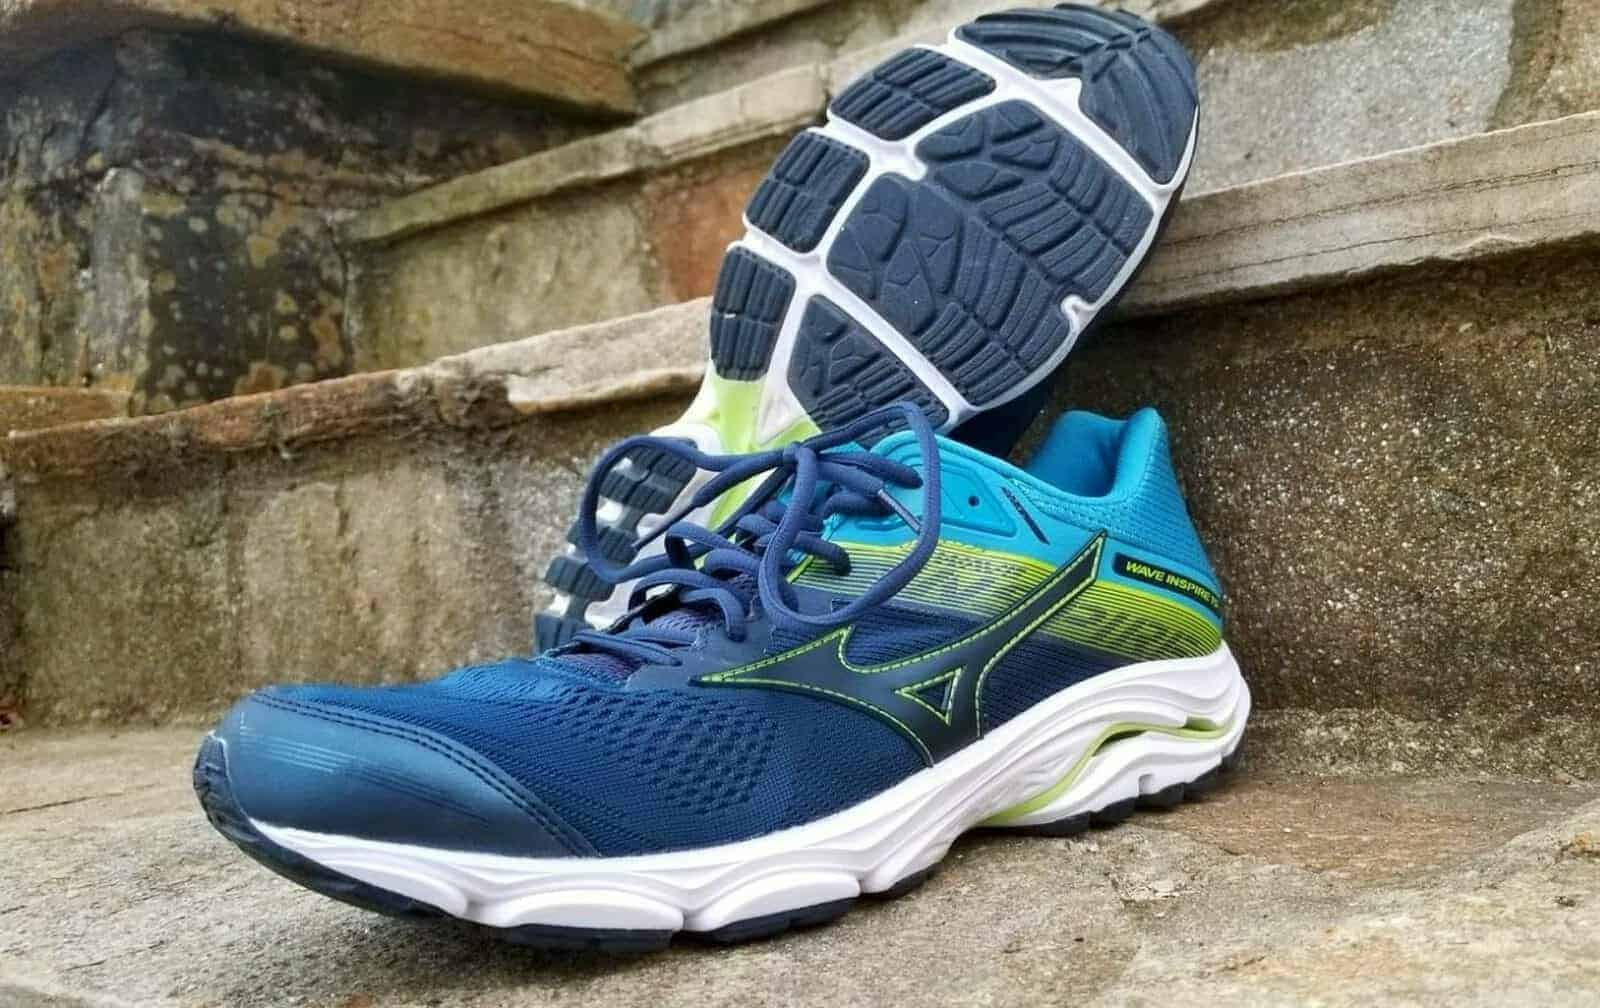 Mizuno-Wave-Inspire-15-Review-Pic-03